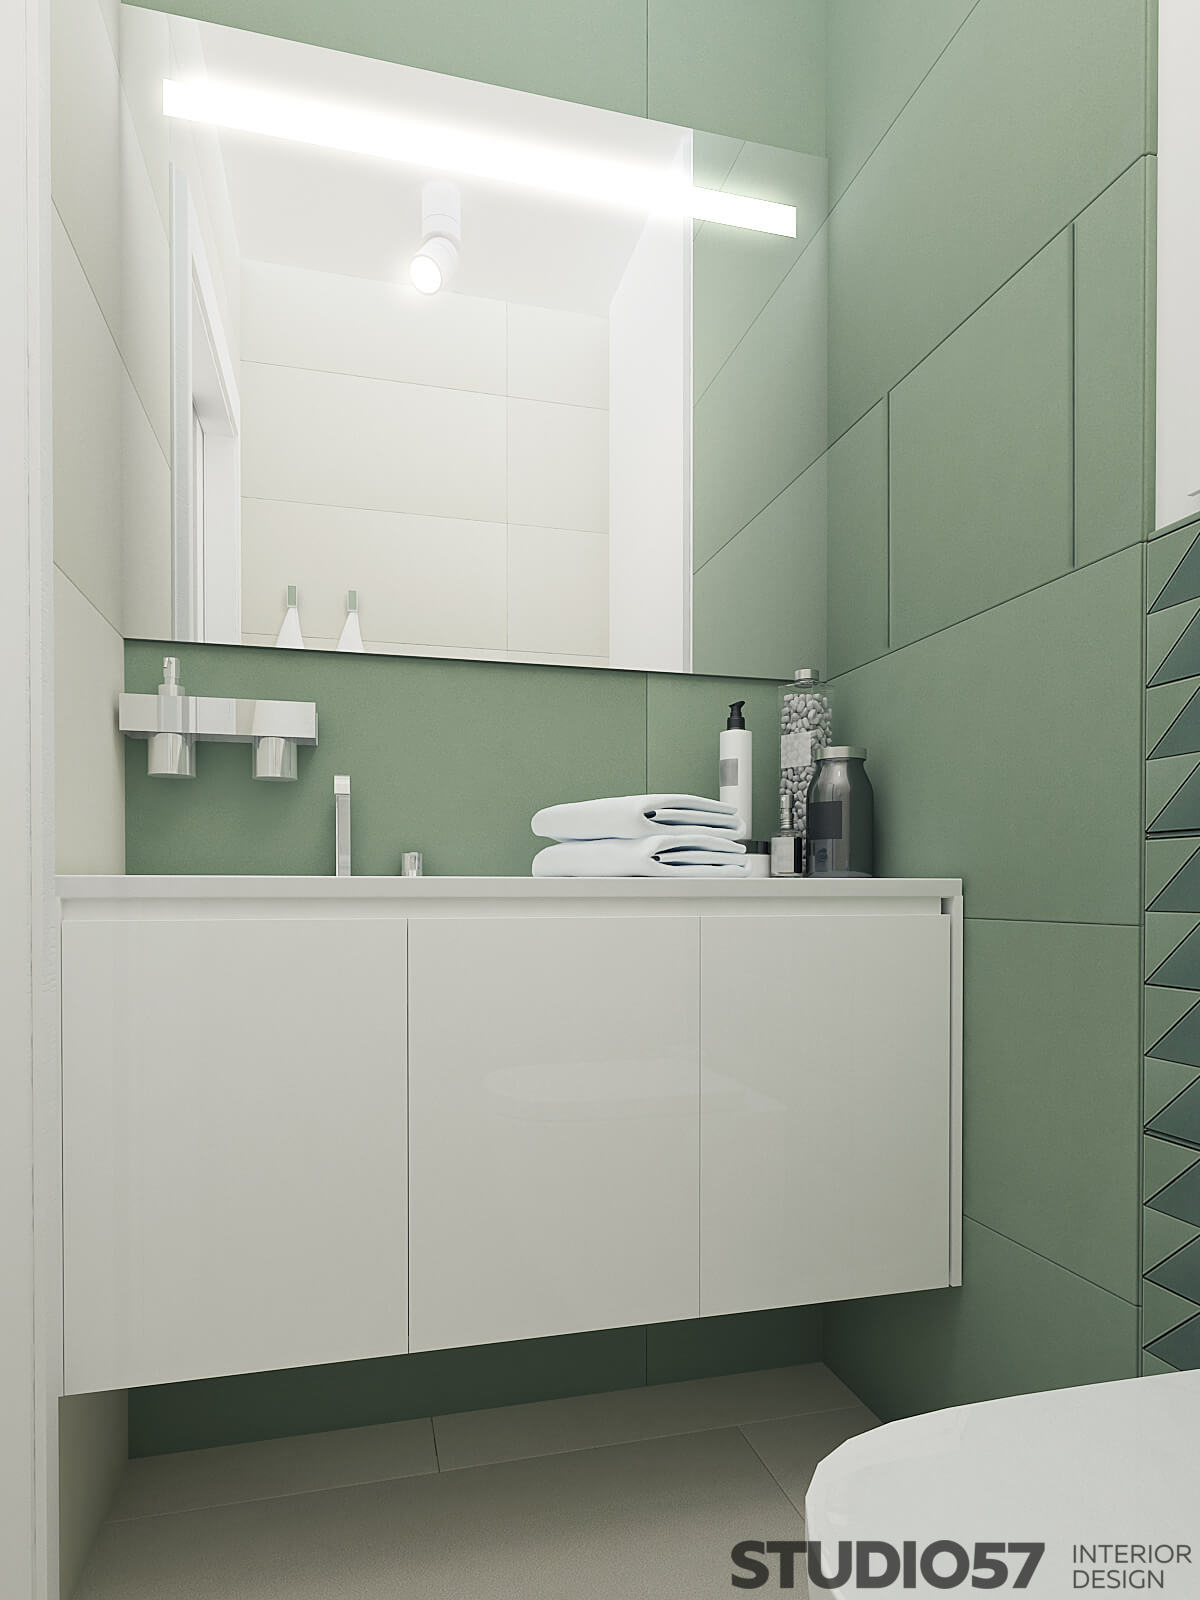 Photo of the bathroom in marsh color